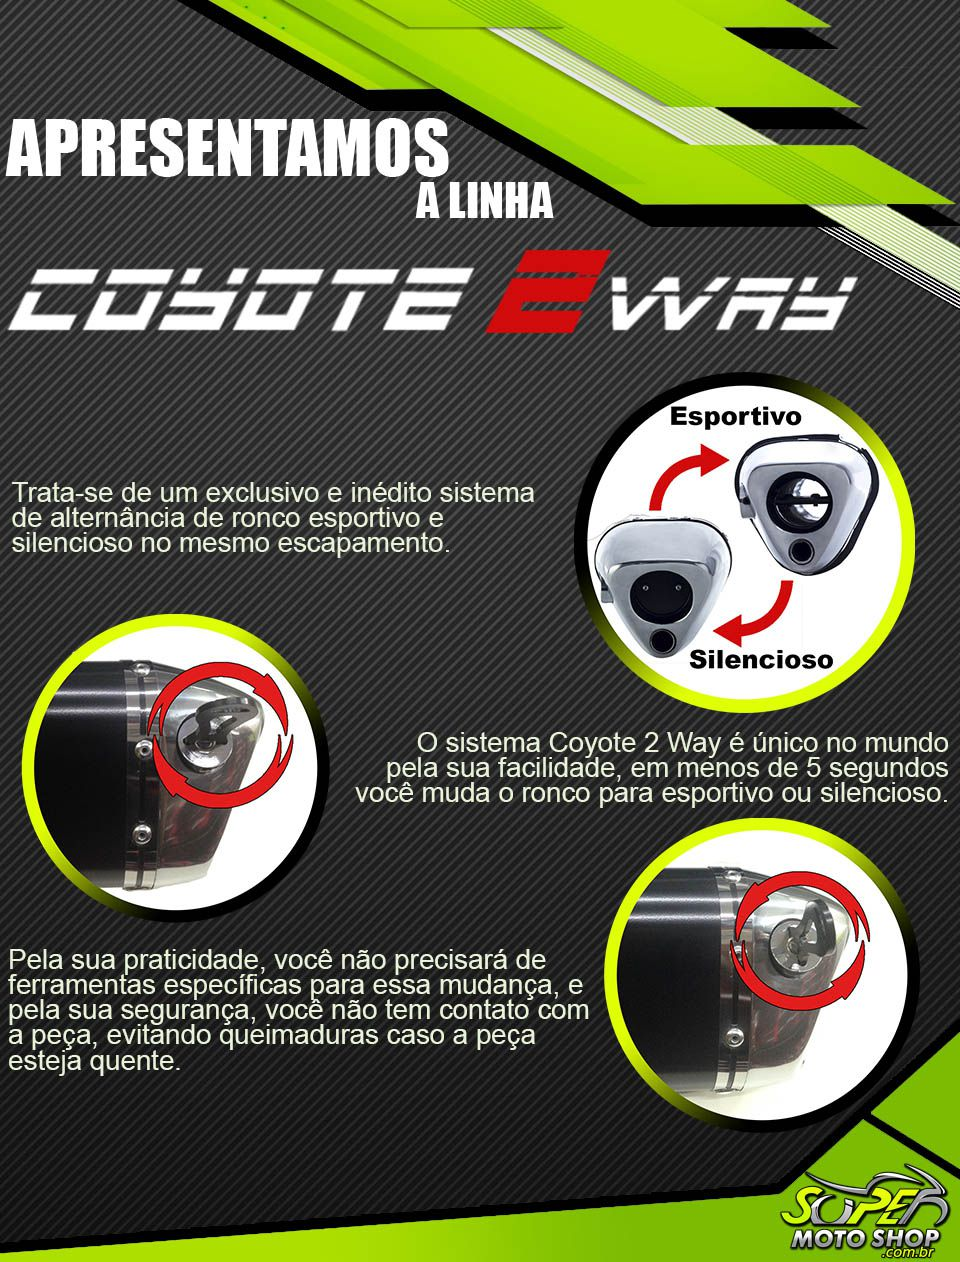 Escape / Ponteira Coyote TRS 2 WAY Alumínio - XRE 300 - Honda